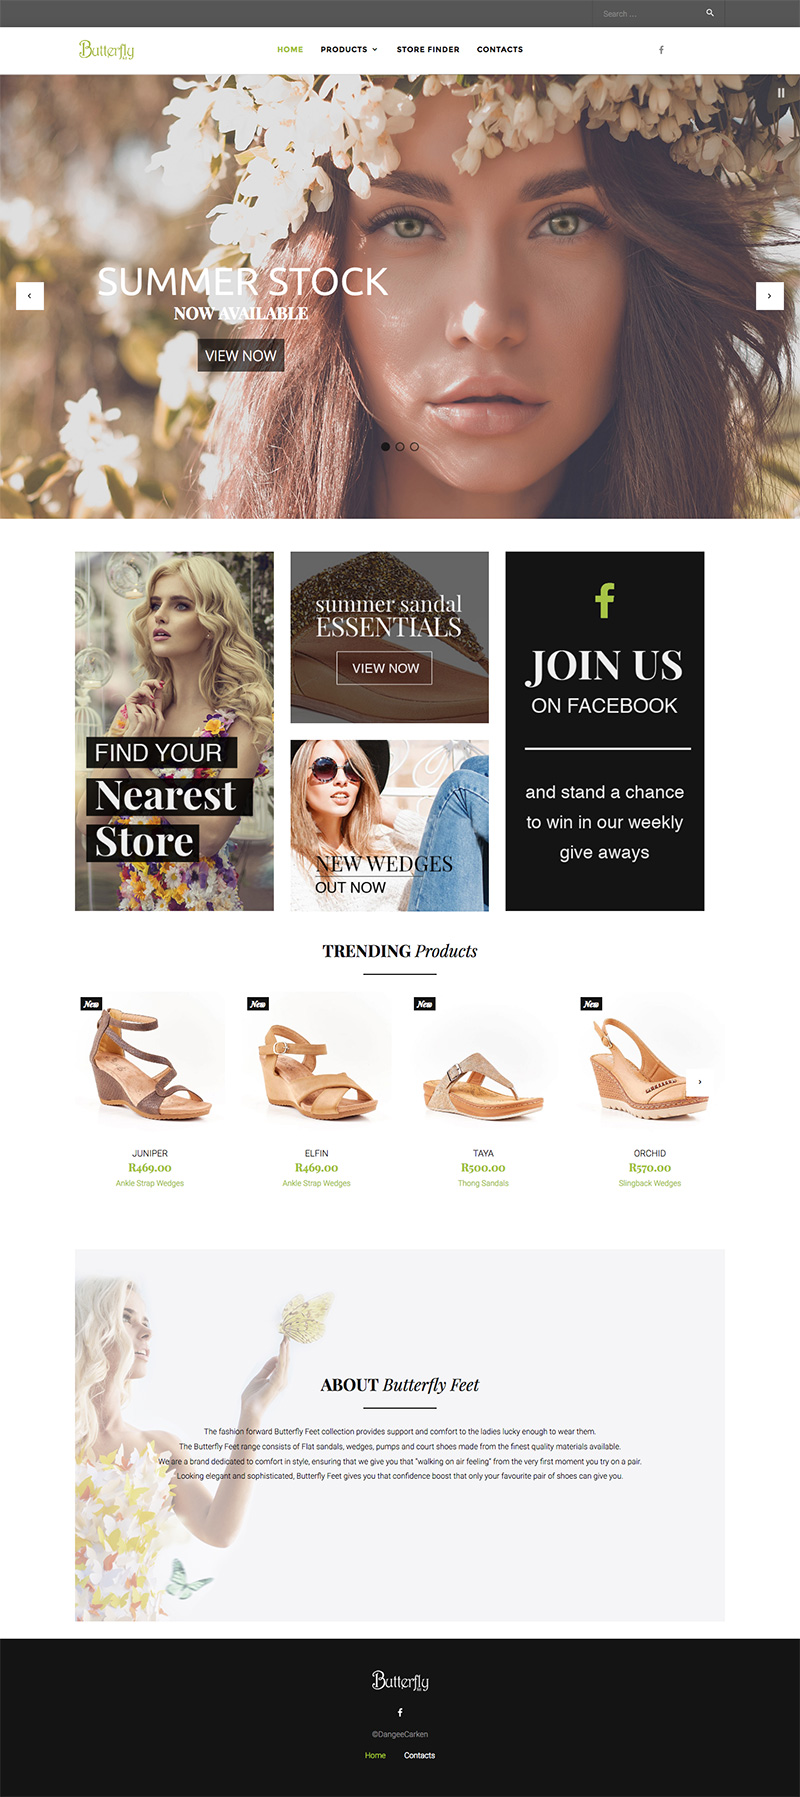 Butterfly Feet Web Design